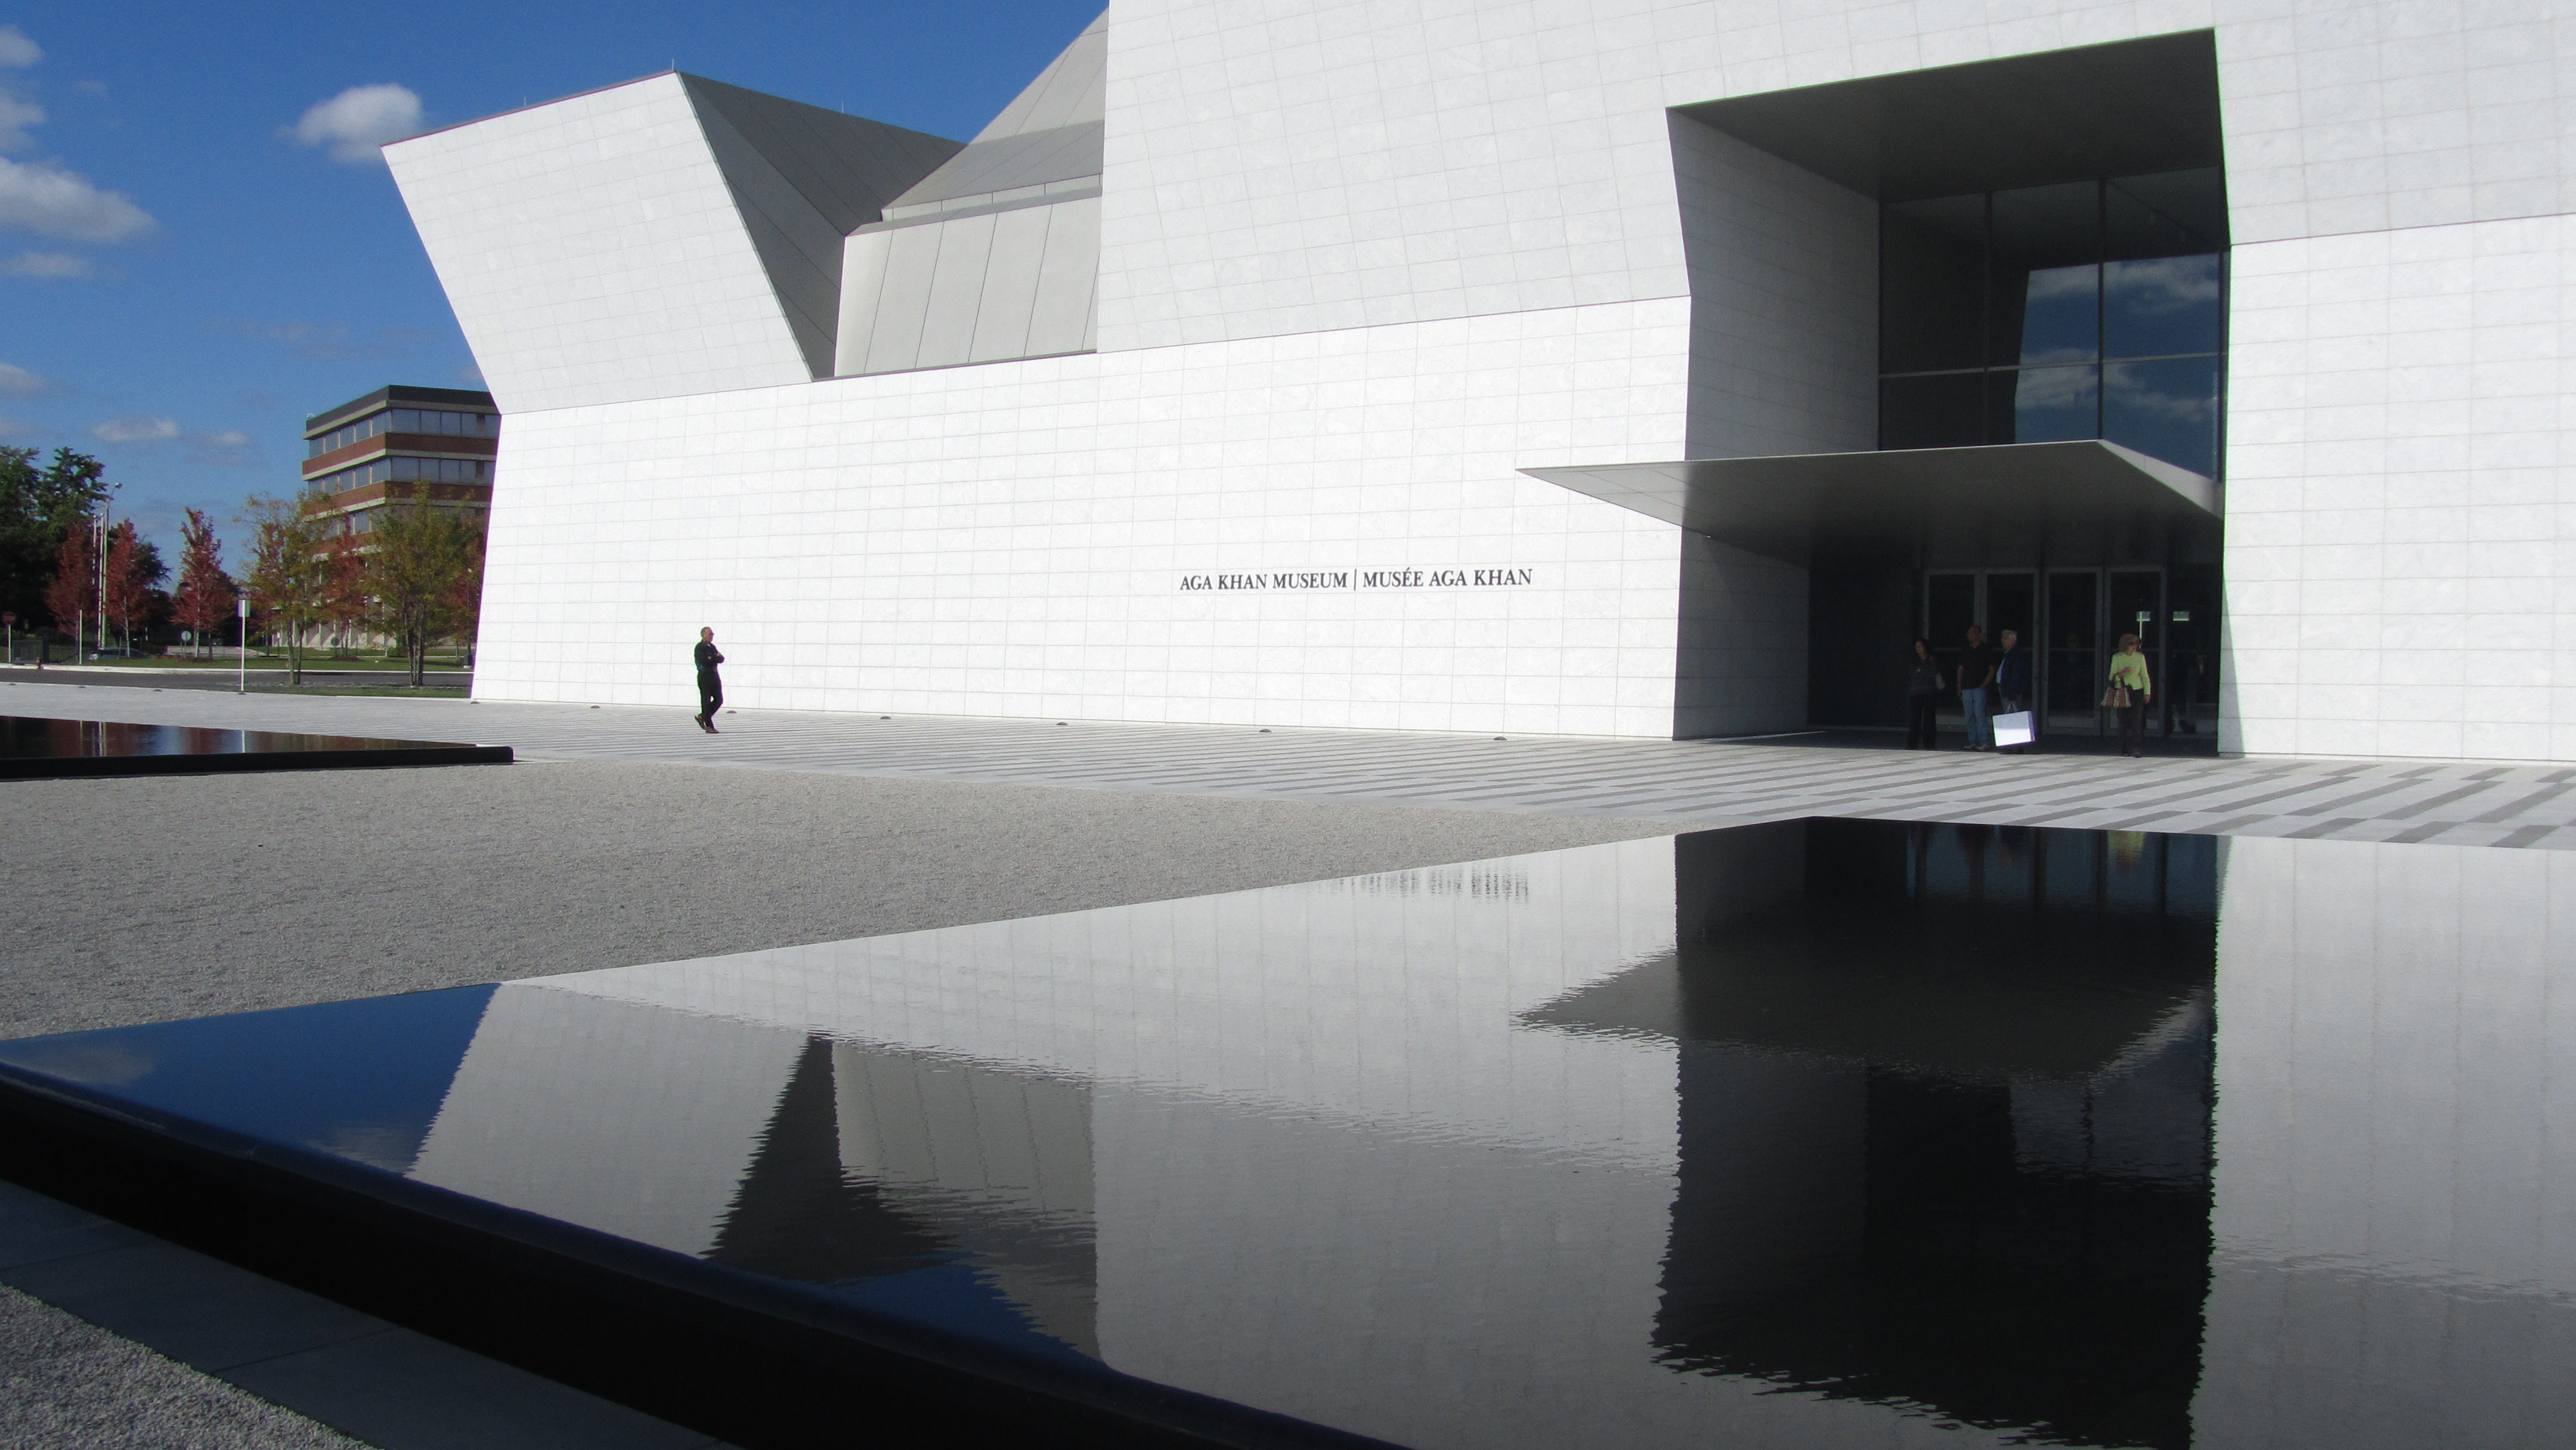 The Aga Khan museum in Don Mills opened last Thursday. (Fatima Kazmi)